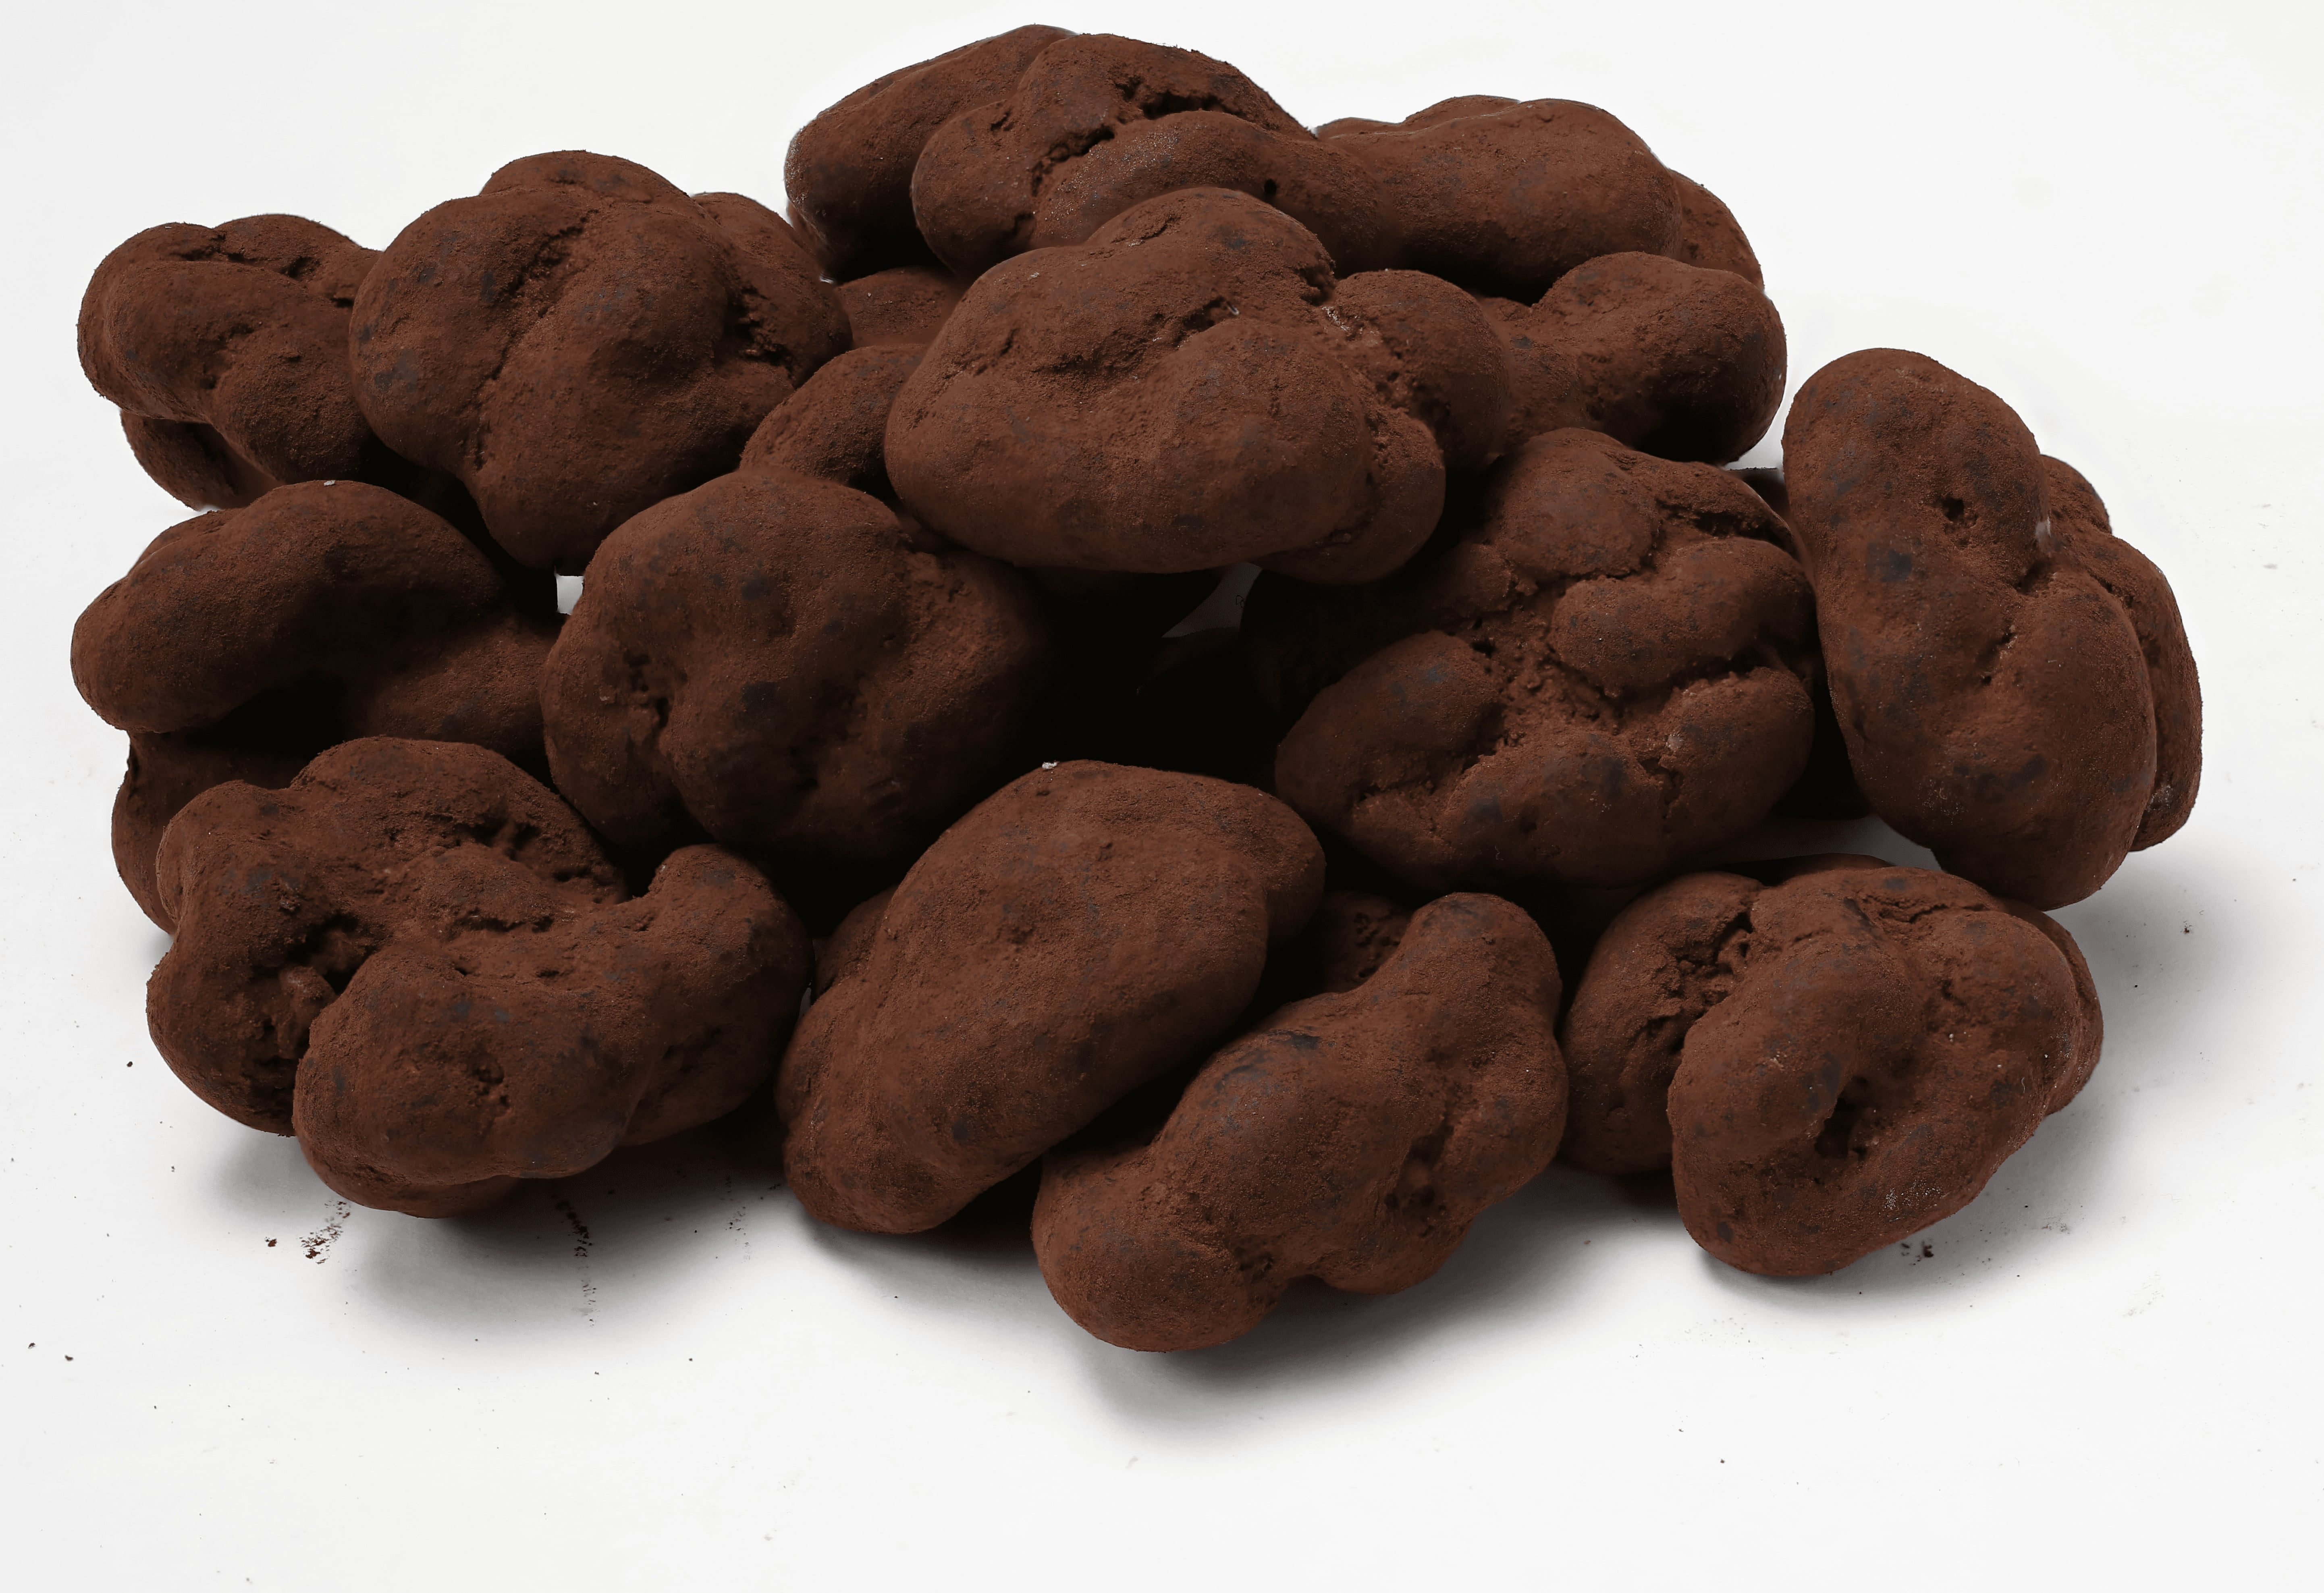 Chocolate Coated Walnut Dragee With Cocoa Powder